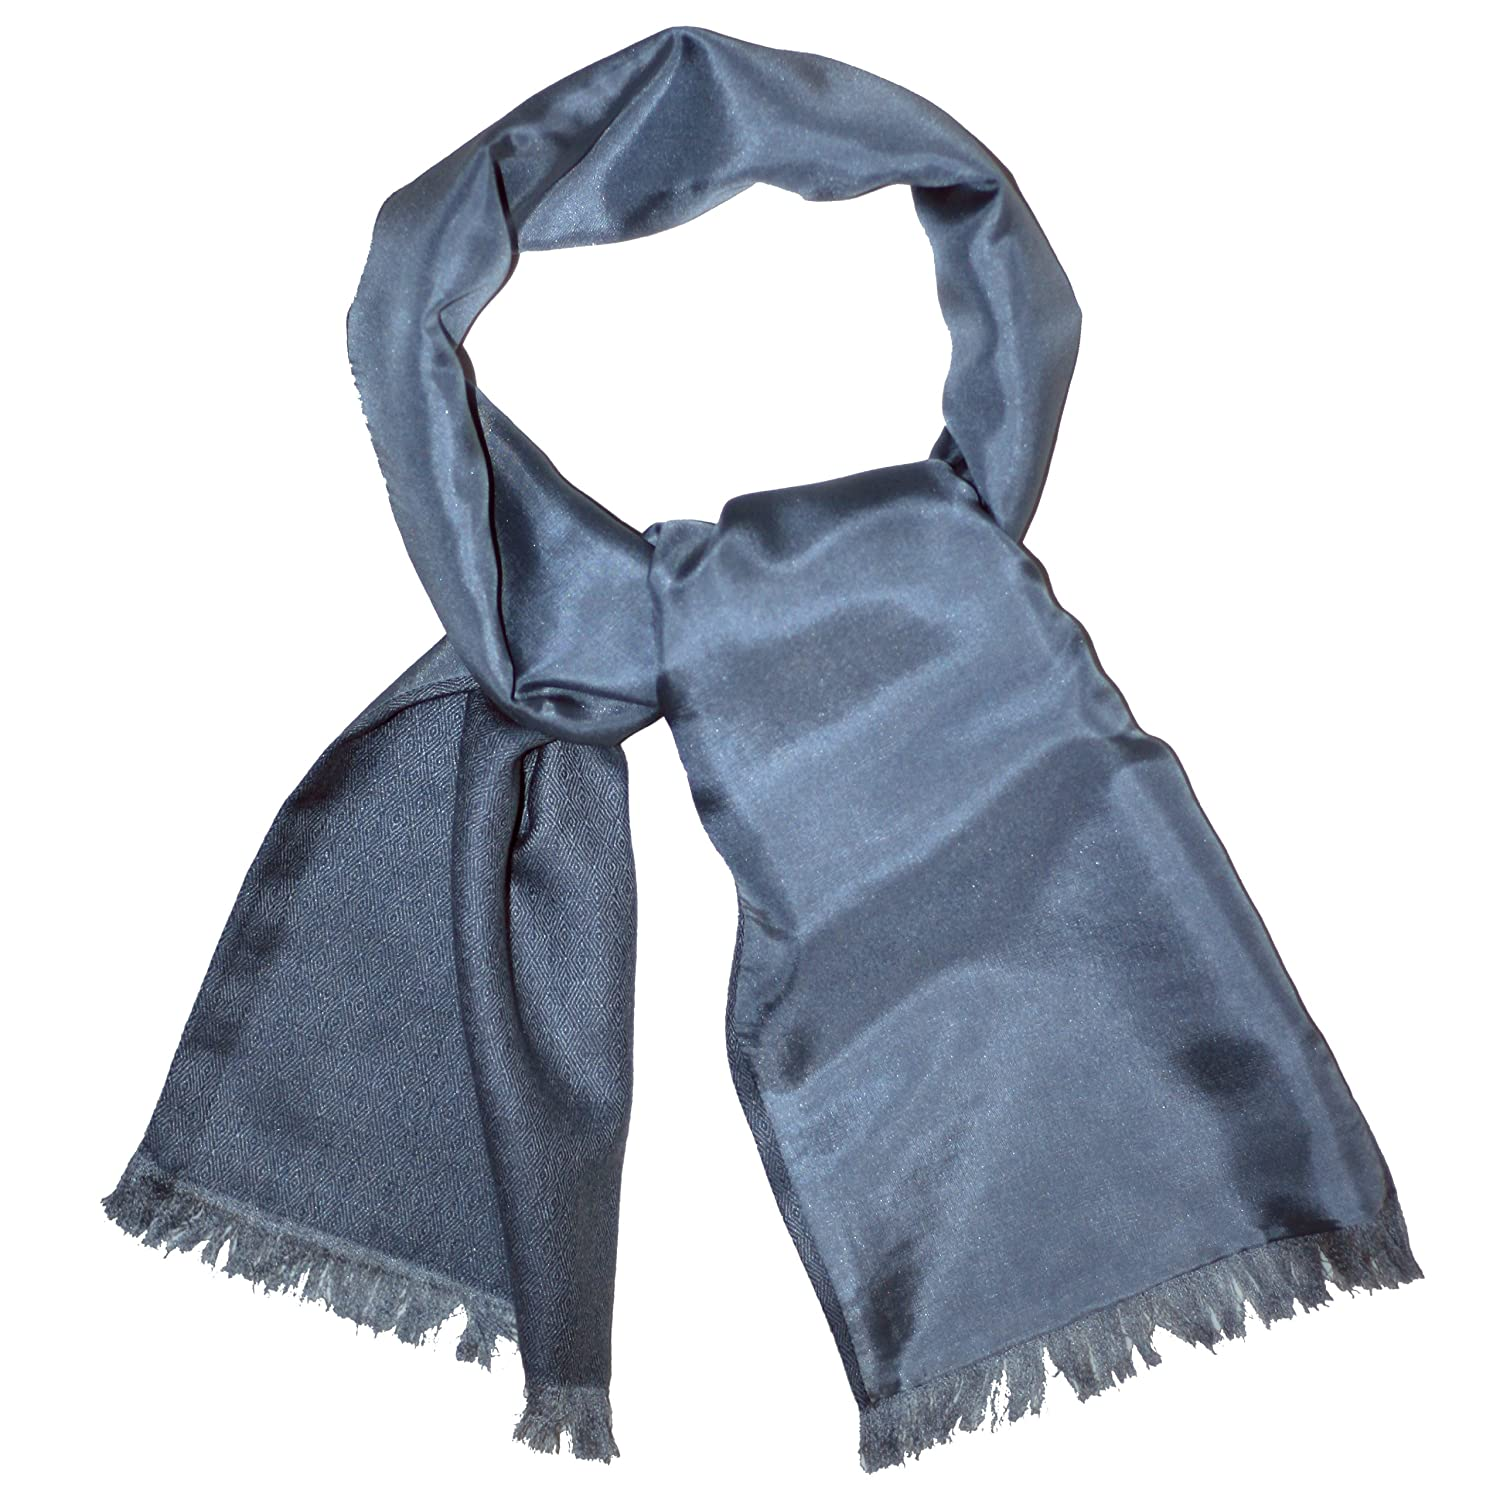 cd5d61e1329 Silk Lined Cashmere Neck Scarf - Royal Silk - Grey at Amazon Women's  Clothing store: Fashion Scarves